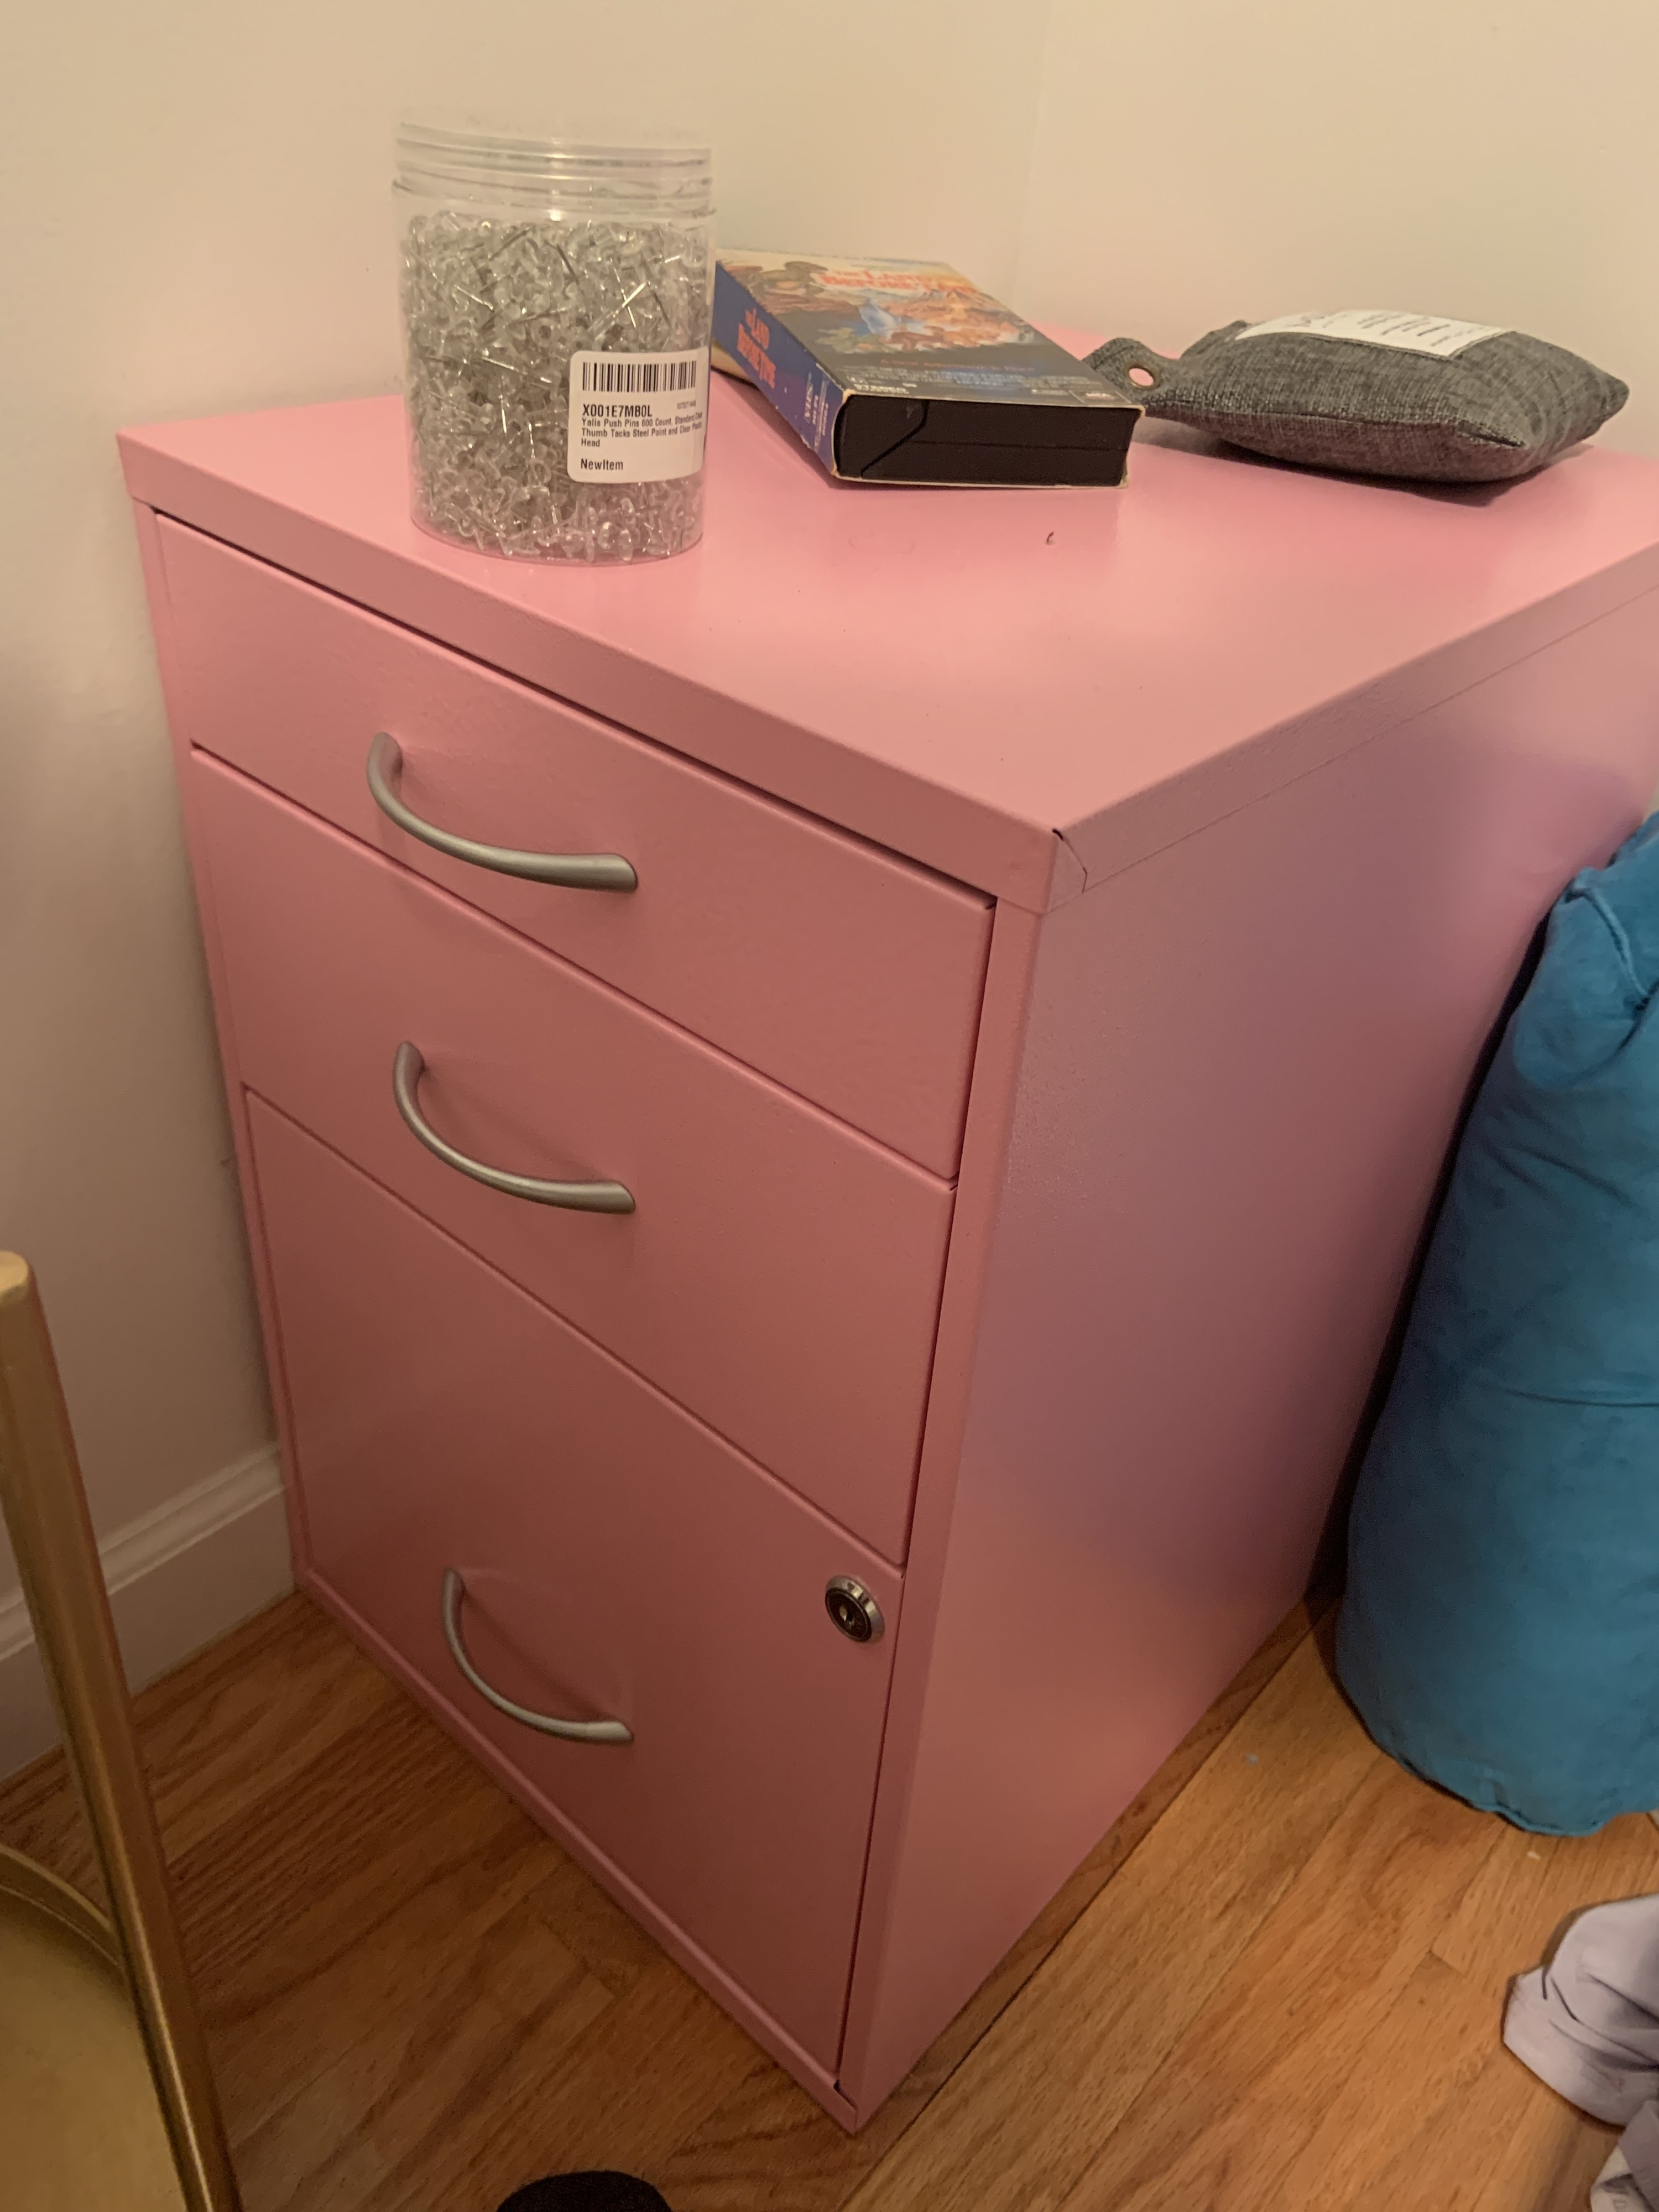 The filing cabinet in pink